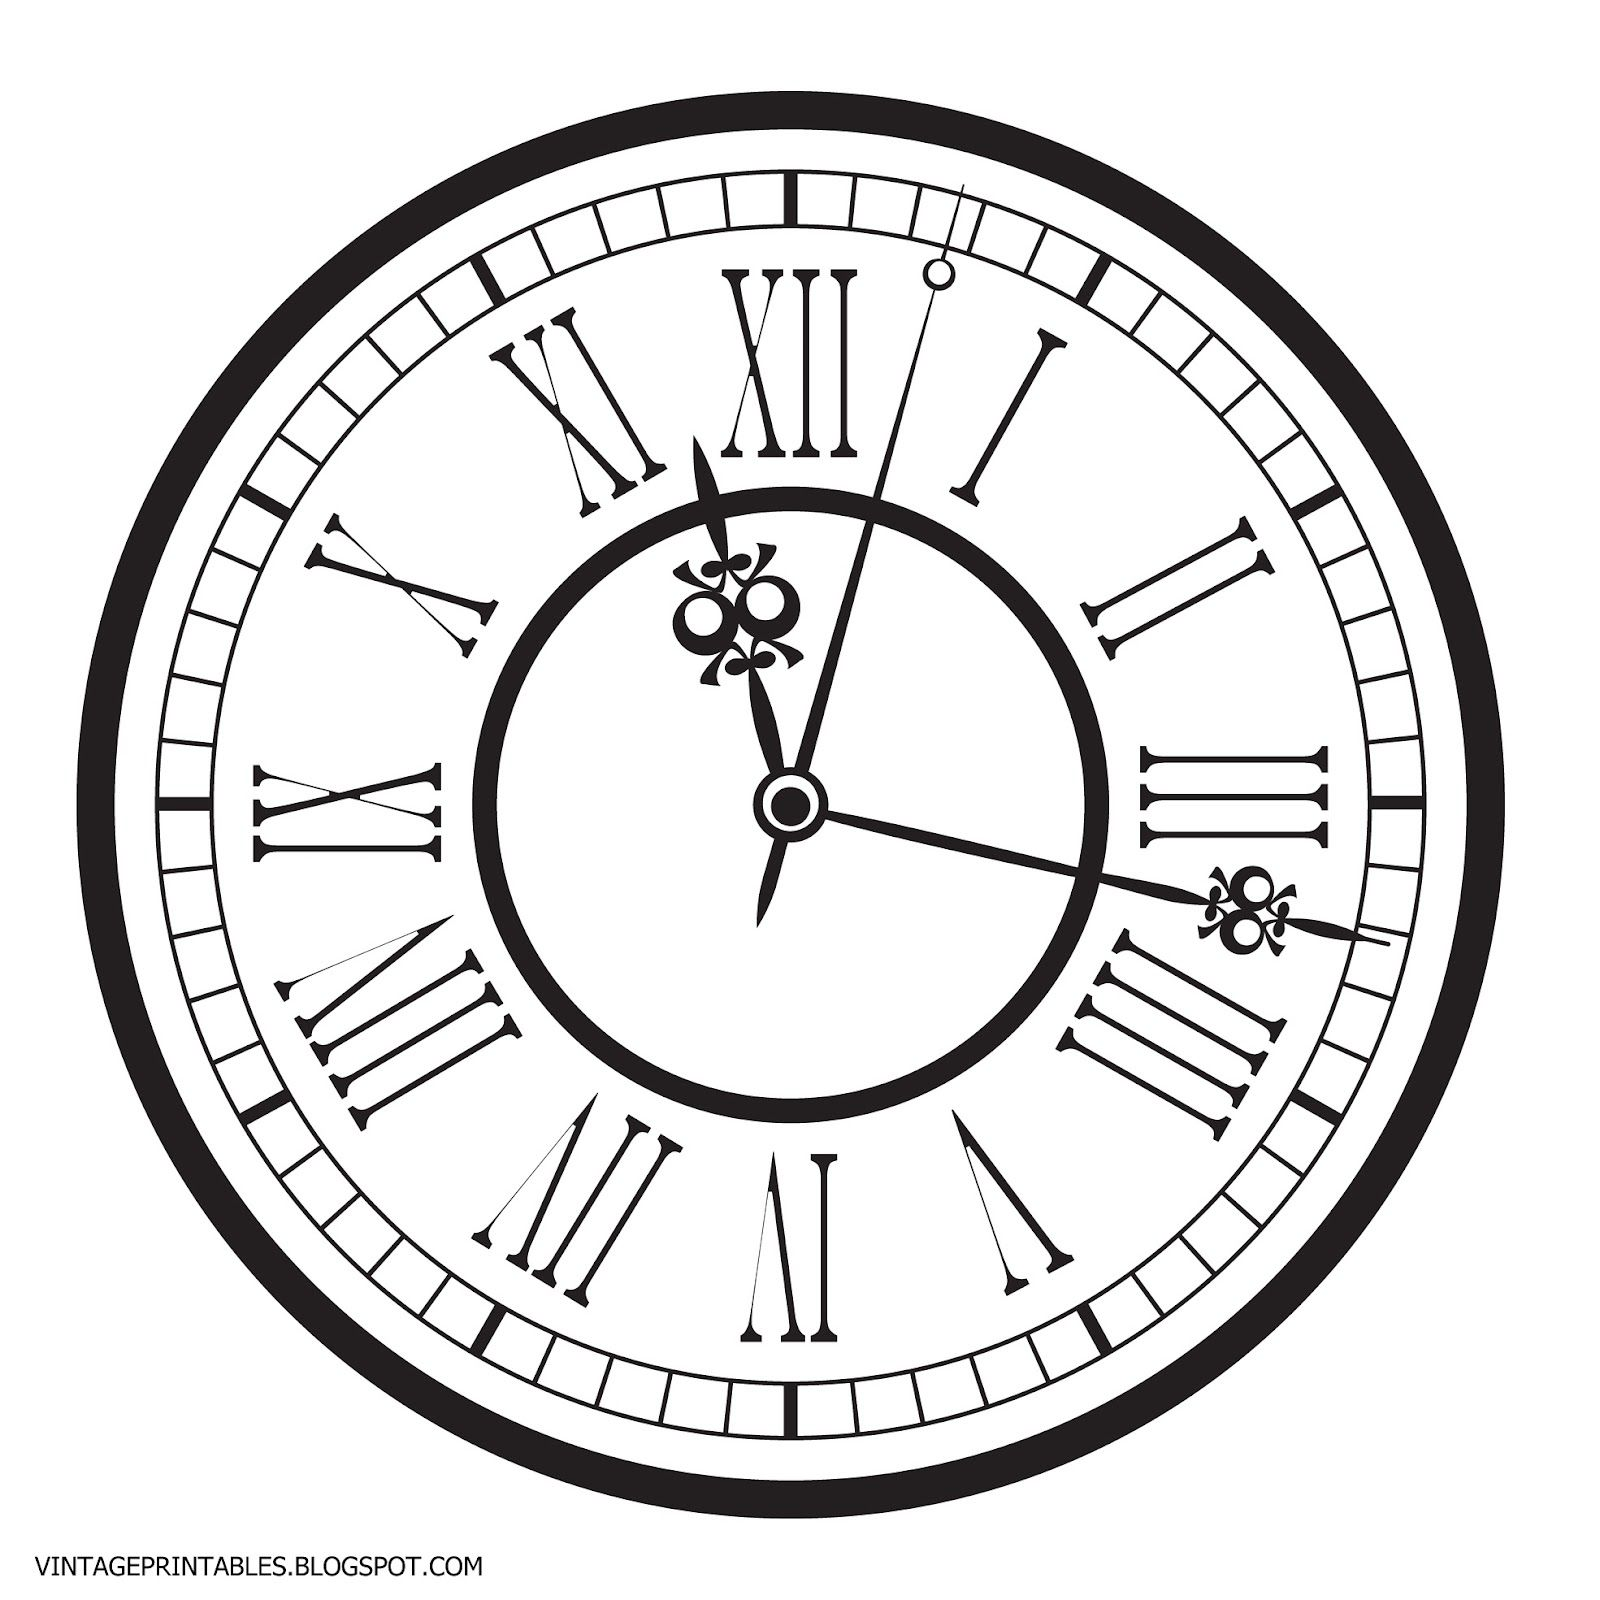 hight resolution of free vintage clip art images old antique clock free clip art